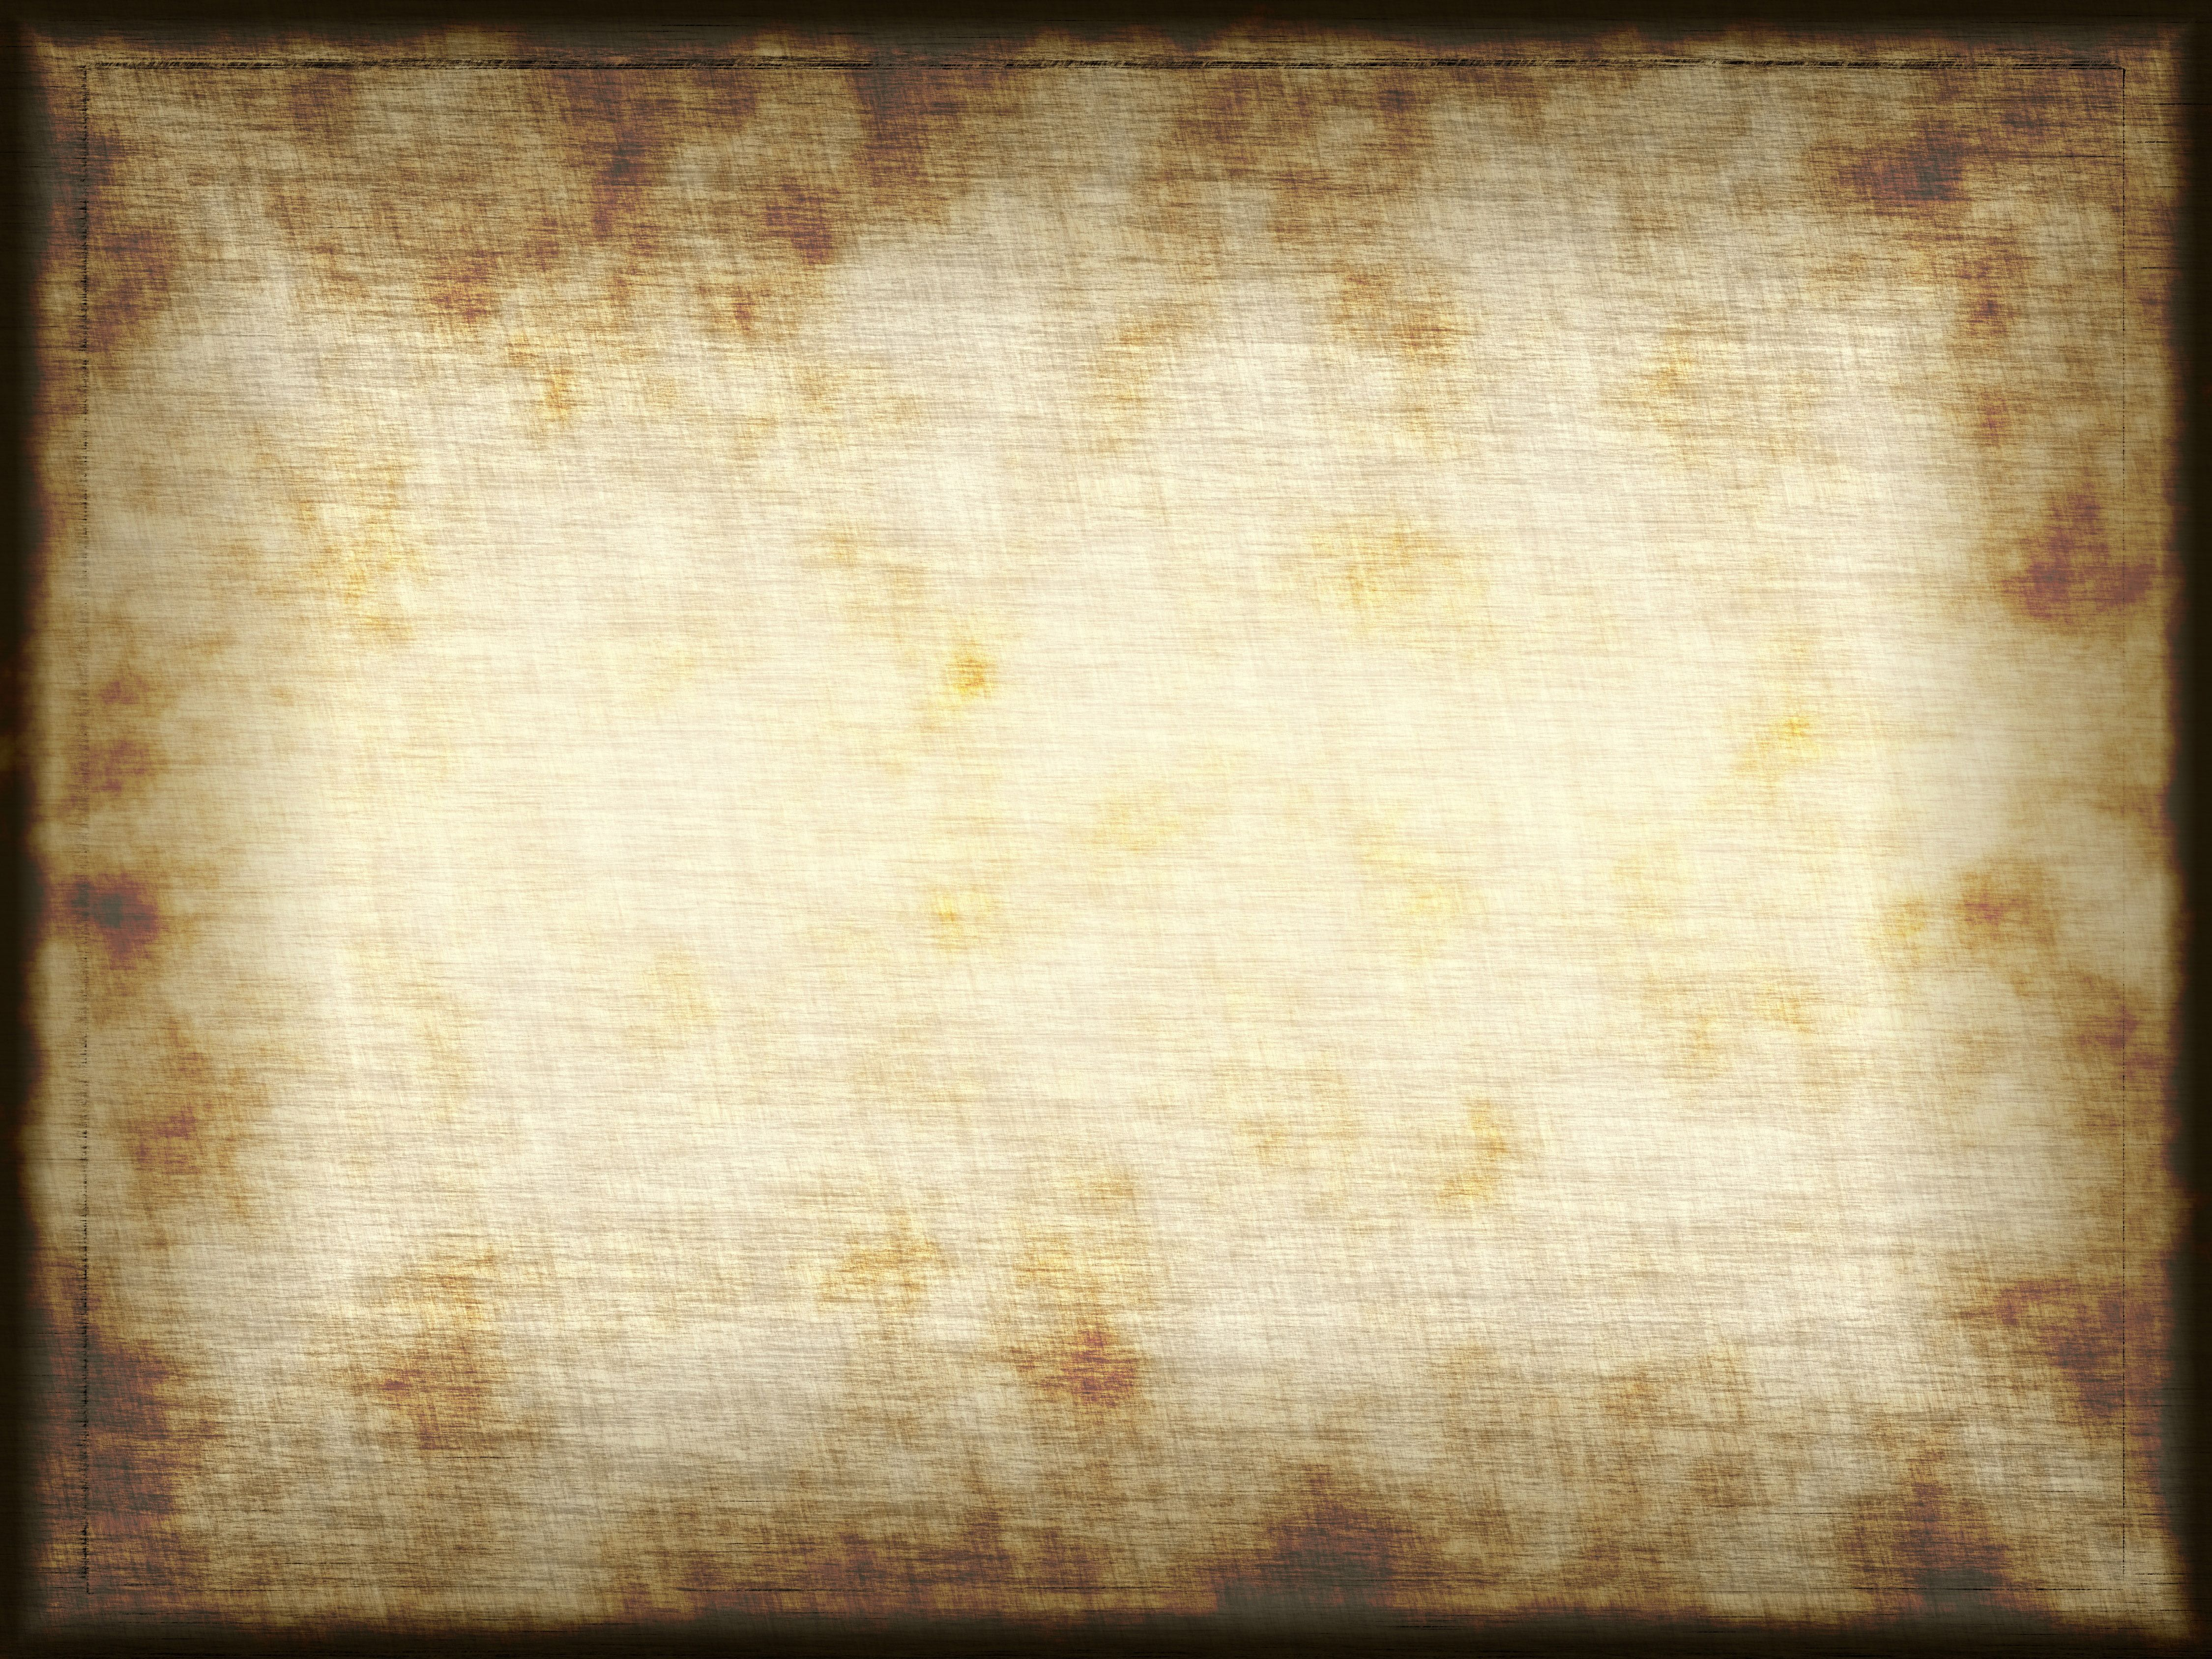 graphic regarding Parchment Paper Printable known as No cost image: Previous Parchment Paper - Passionate, Looking through, Study